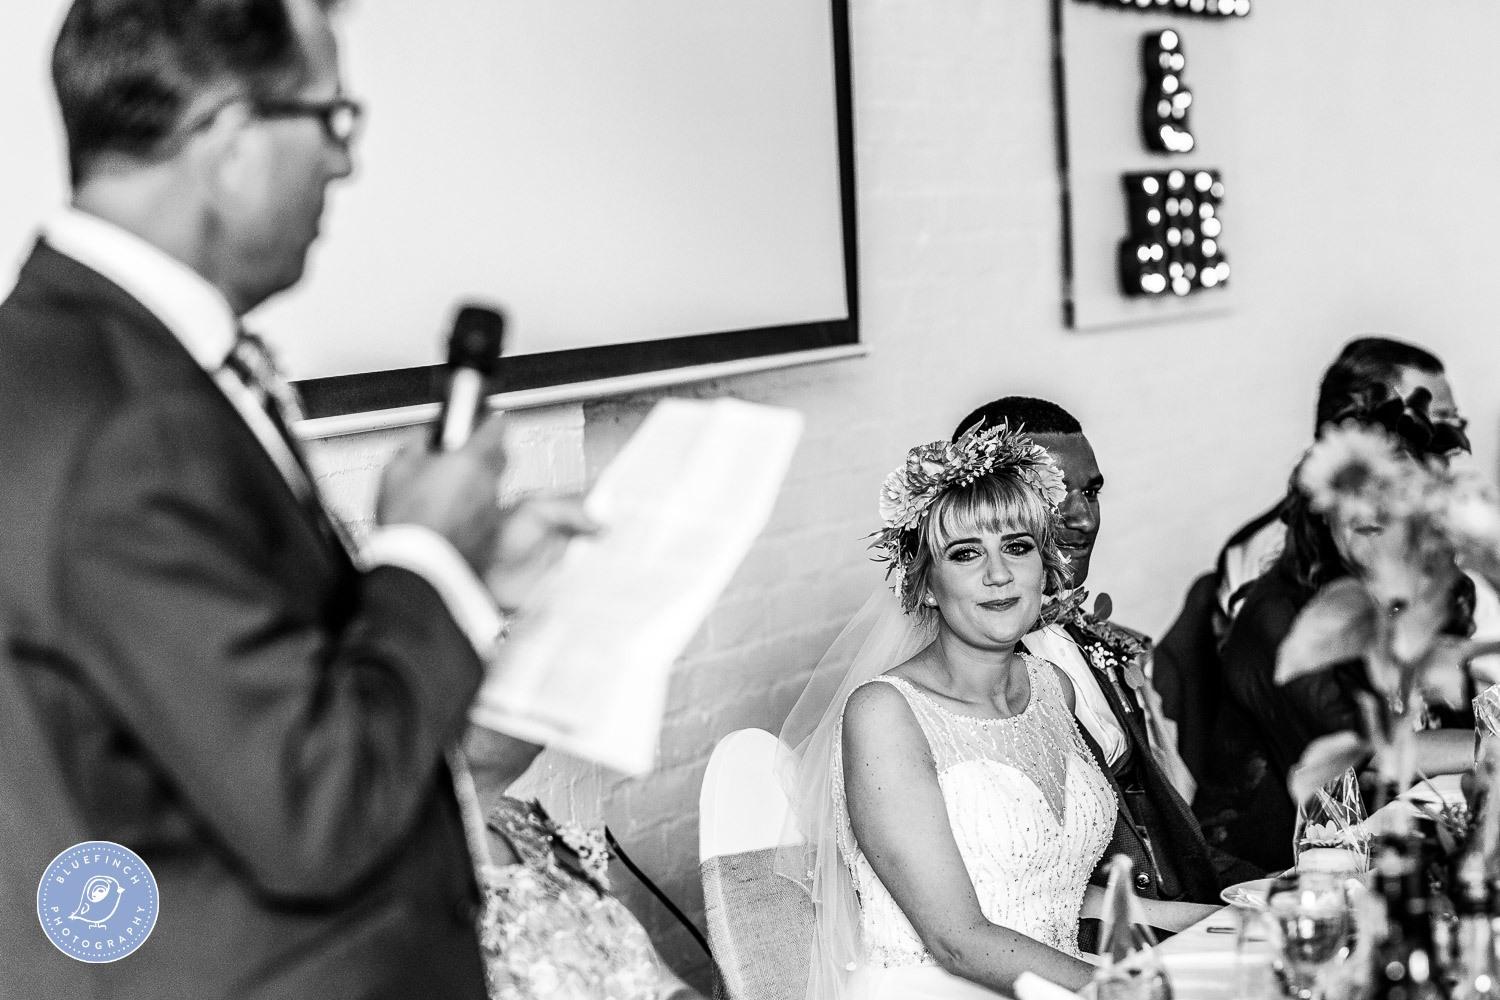 Sarah & Joe's Wedding Photography at The Bond Digbeth